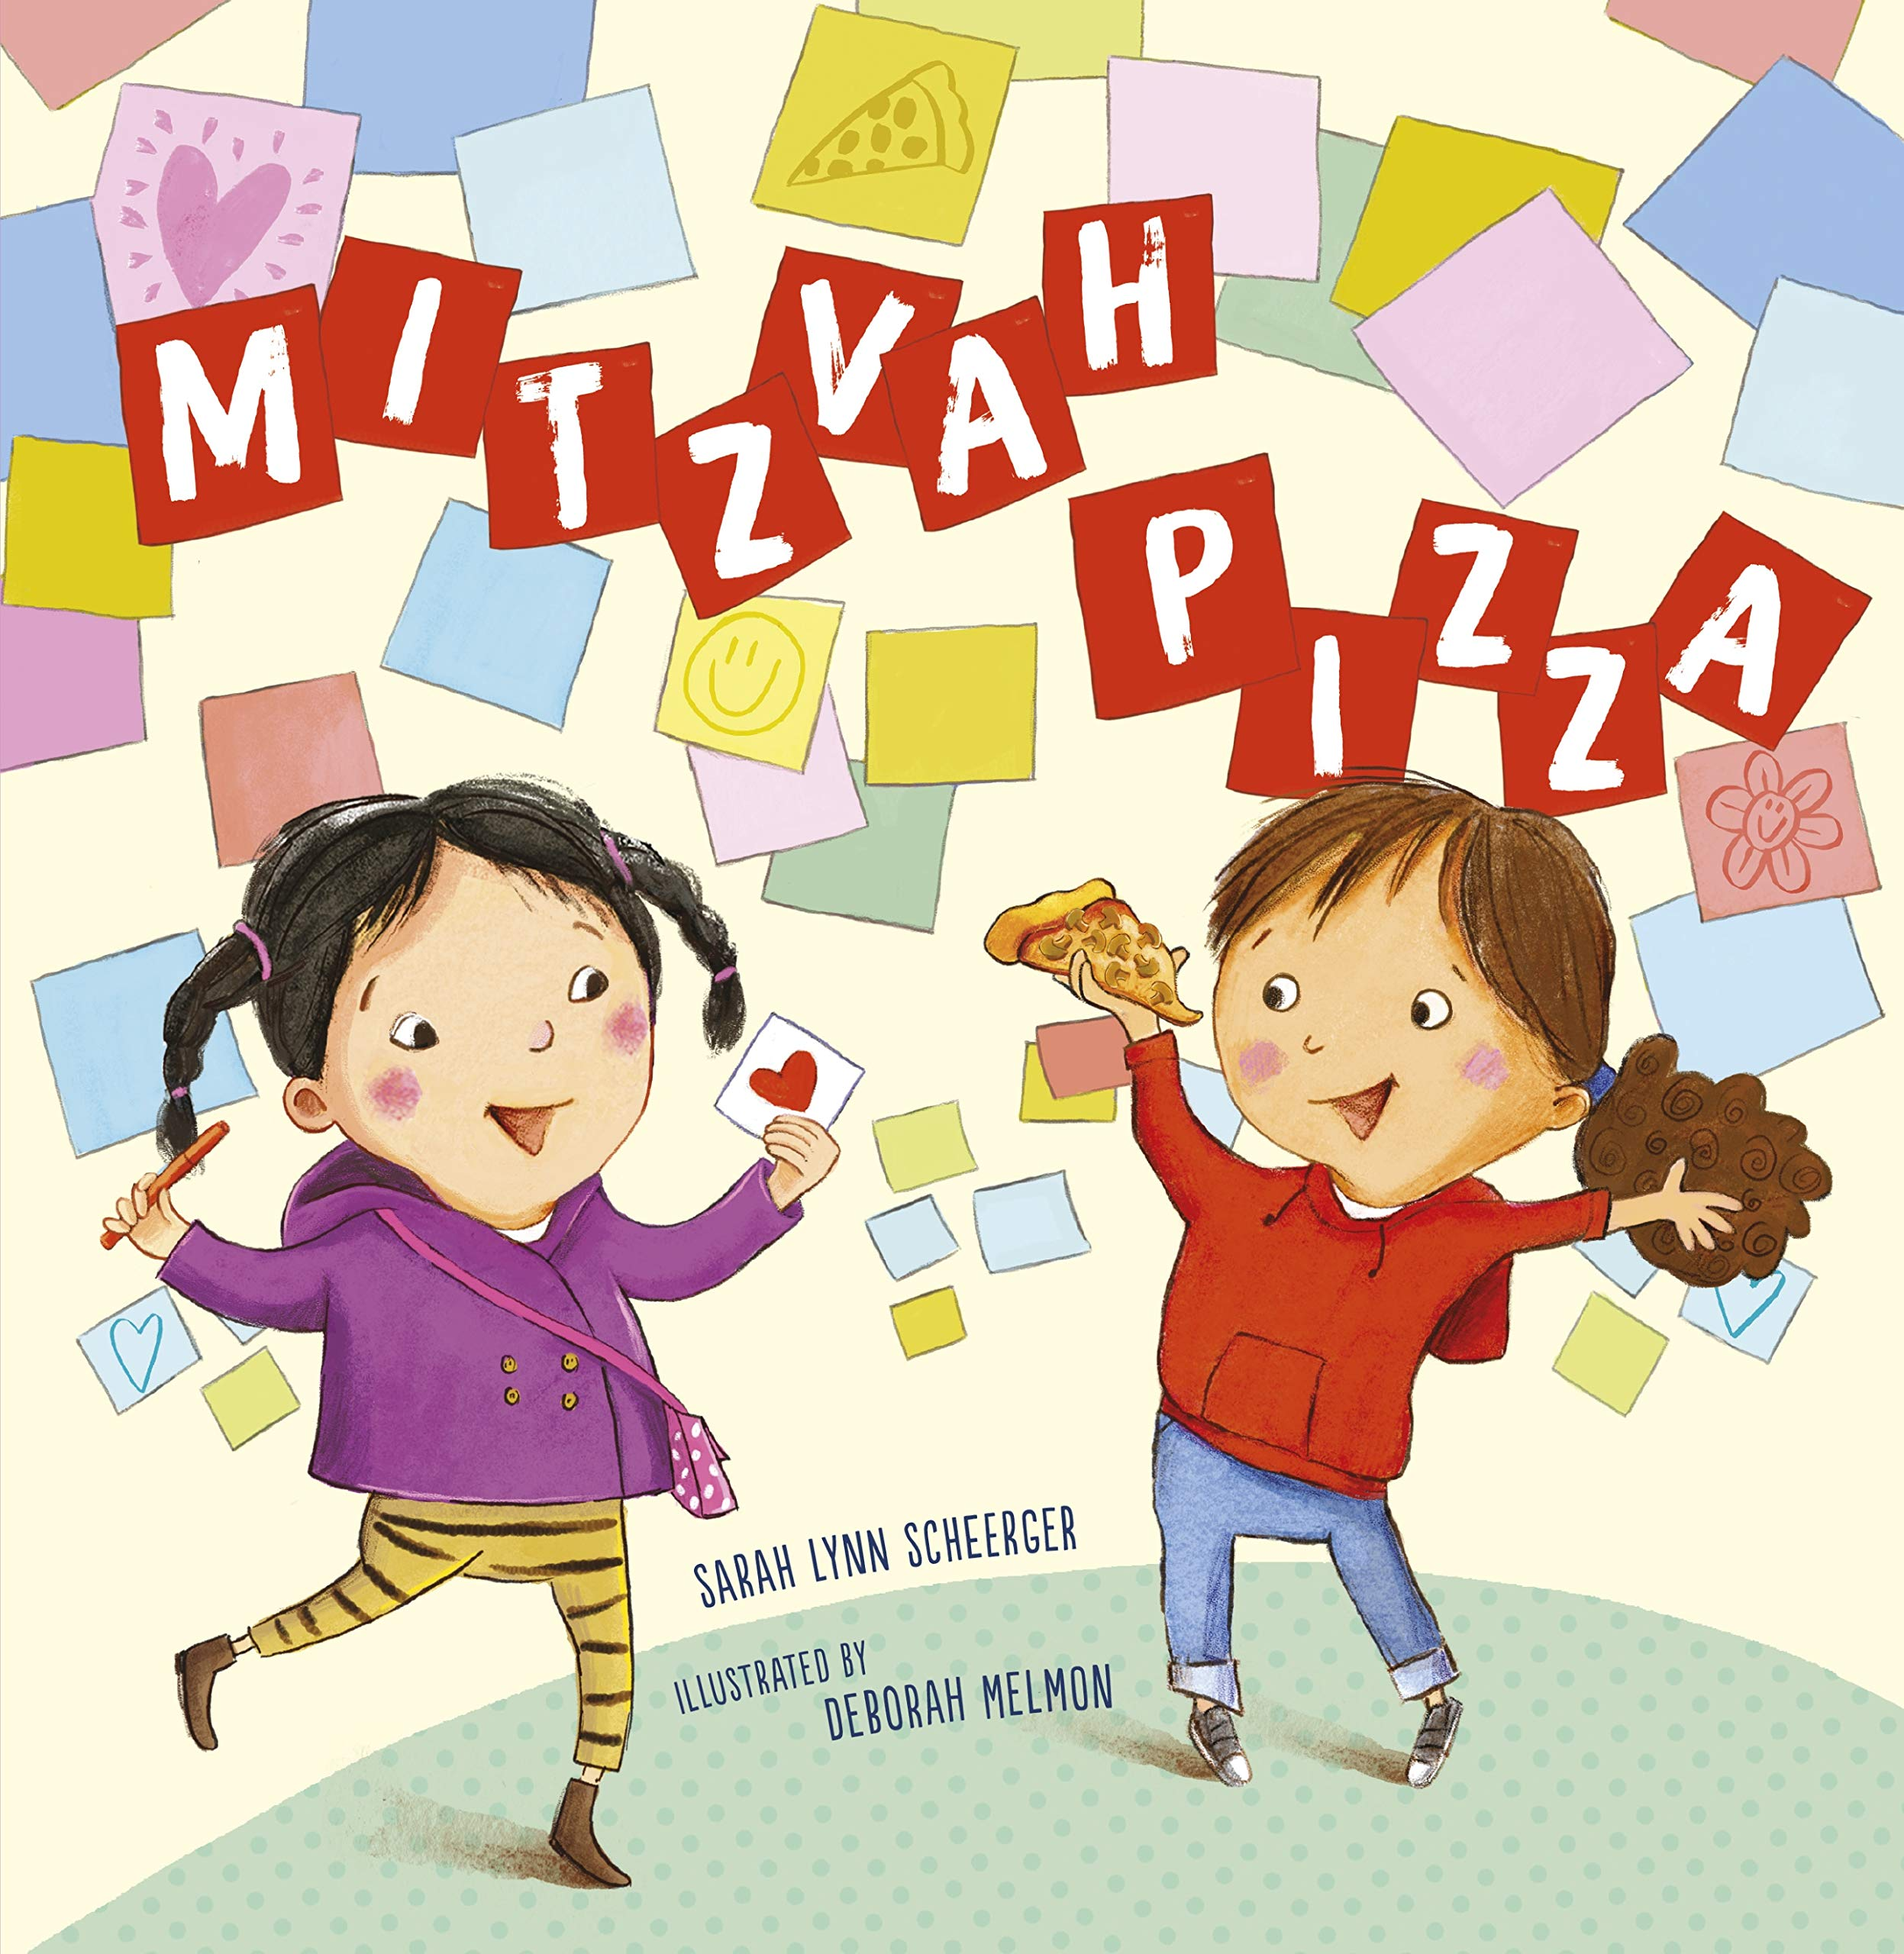 Mitzvah Pizza